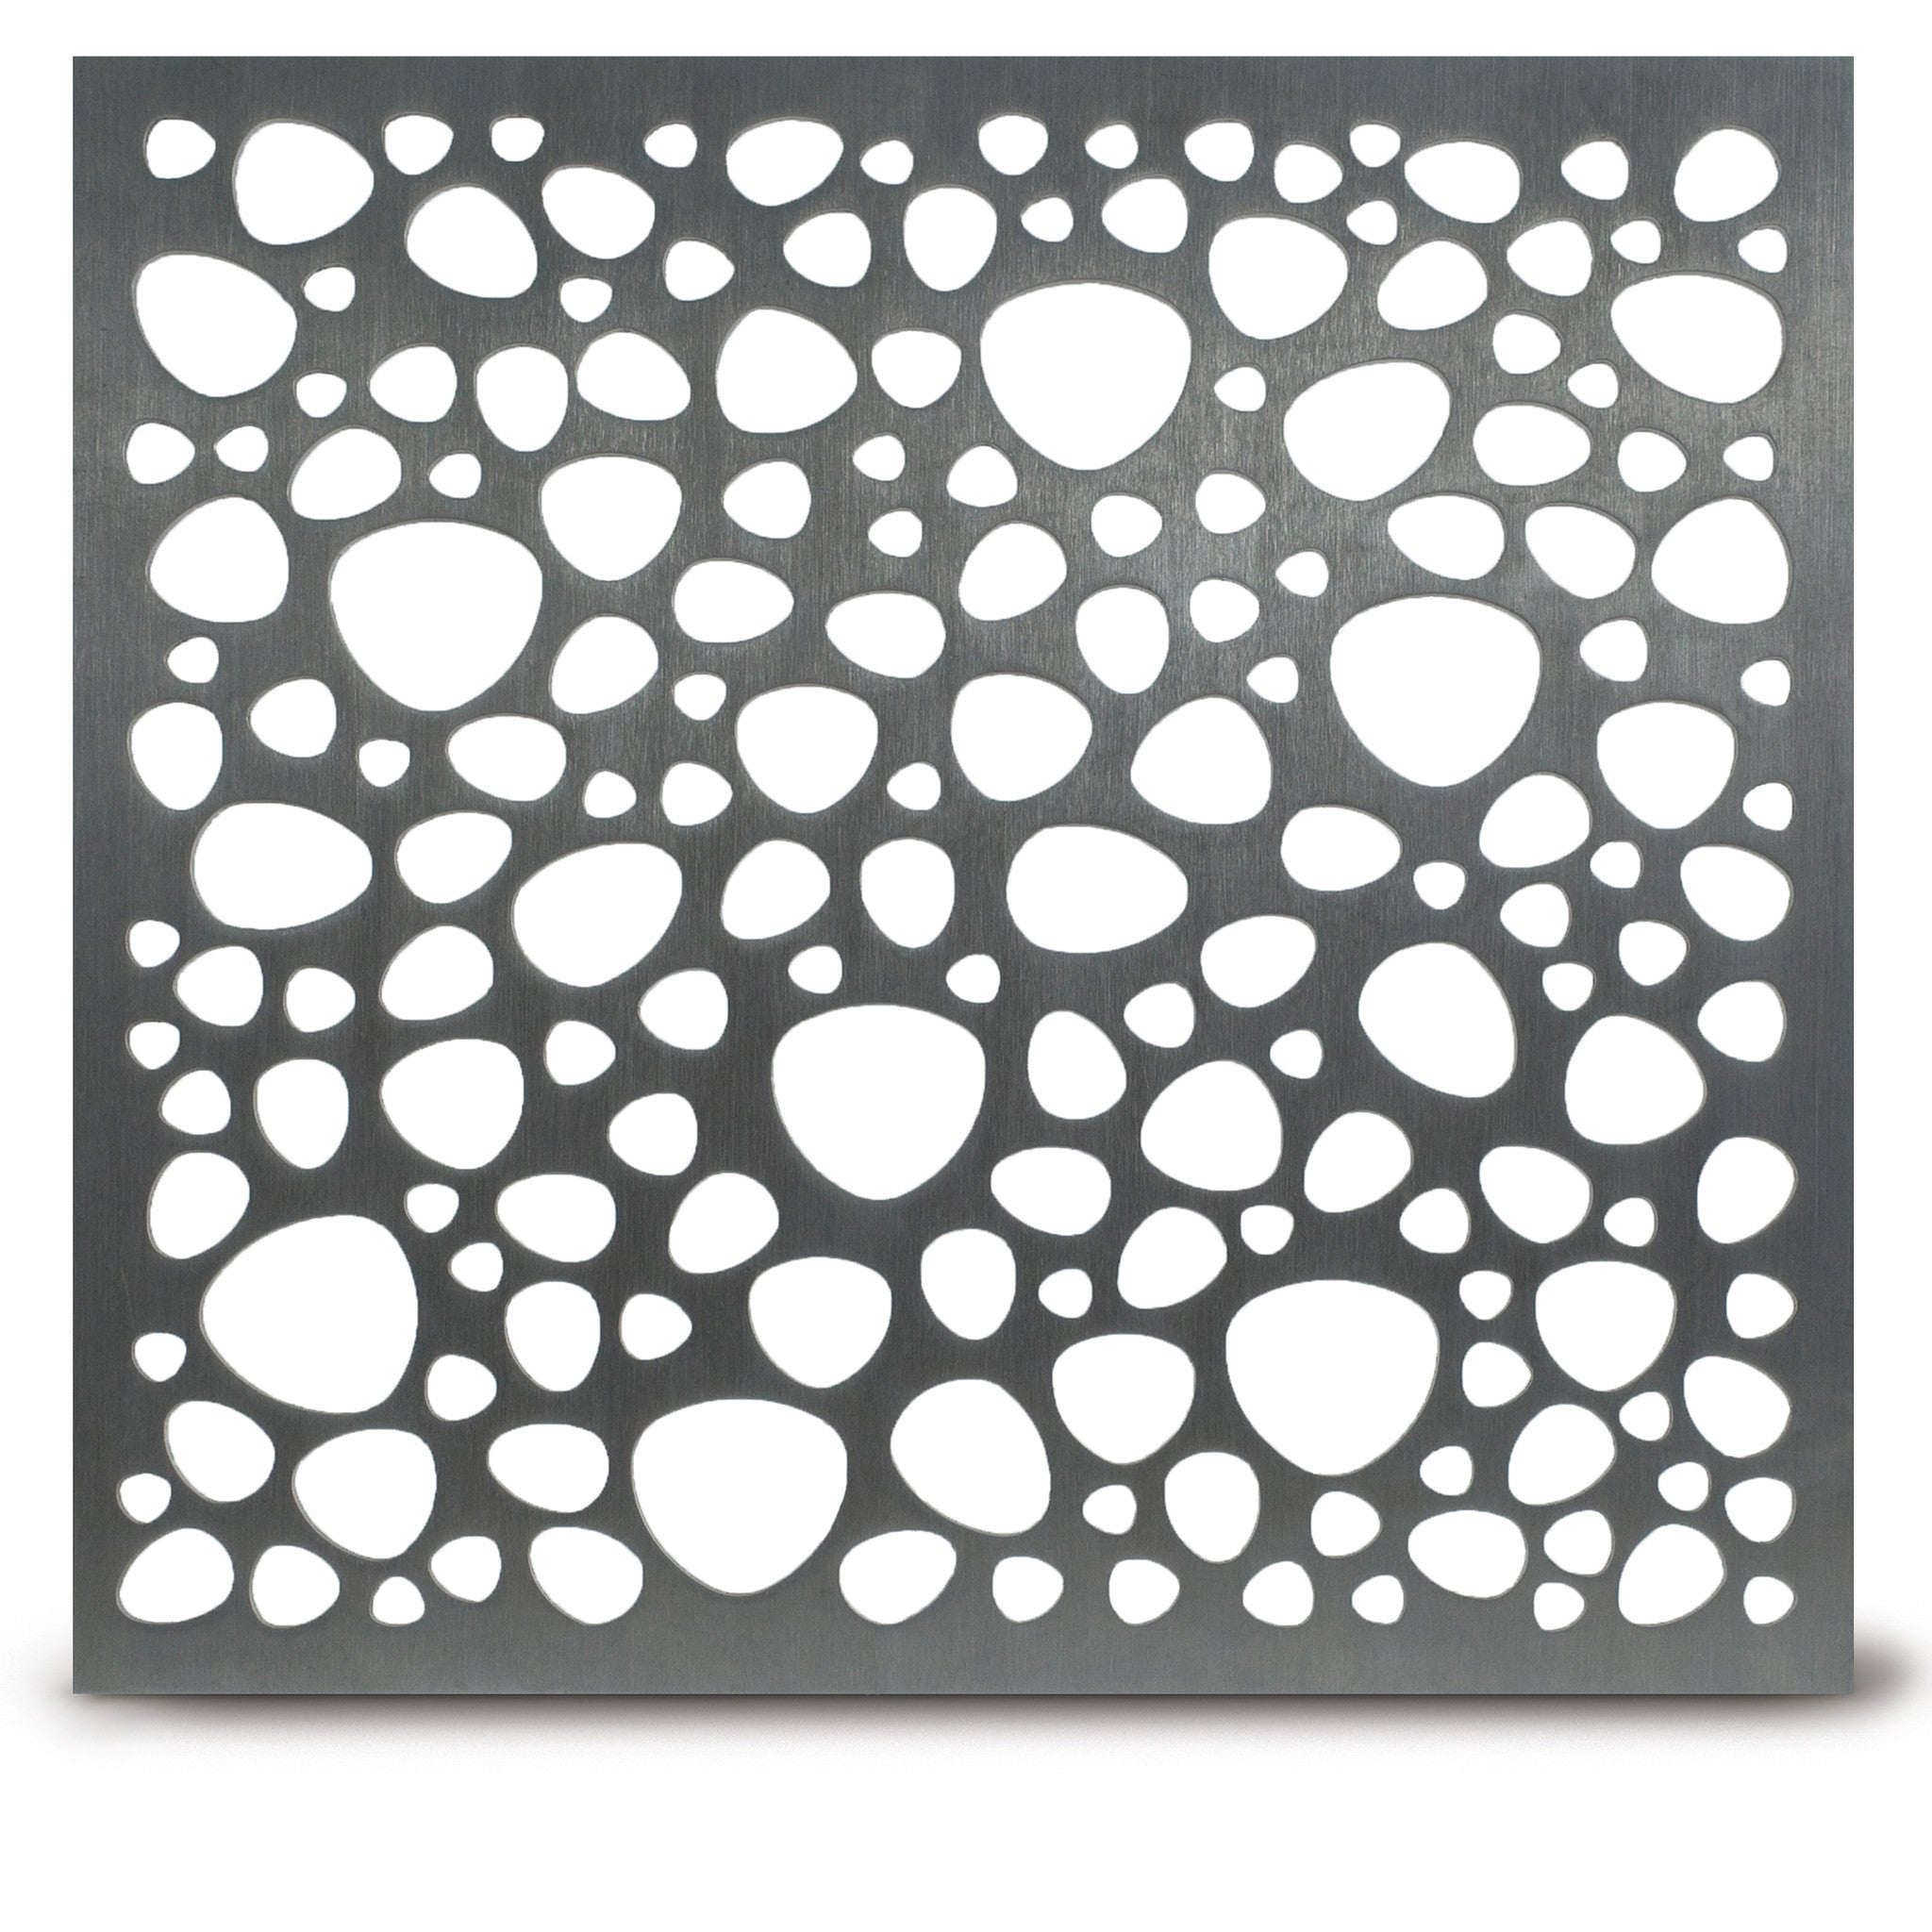 234 Pebbles Perforated Grille Architectural Grille